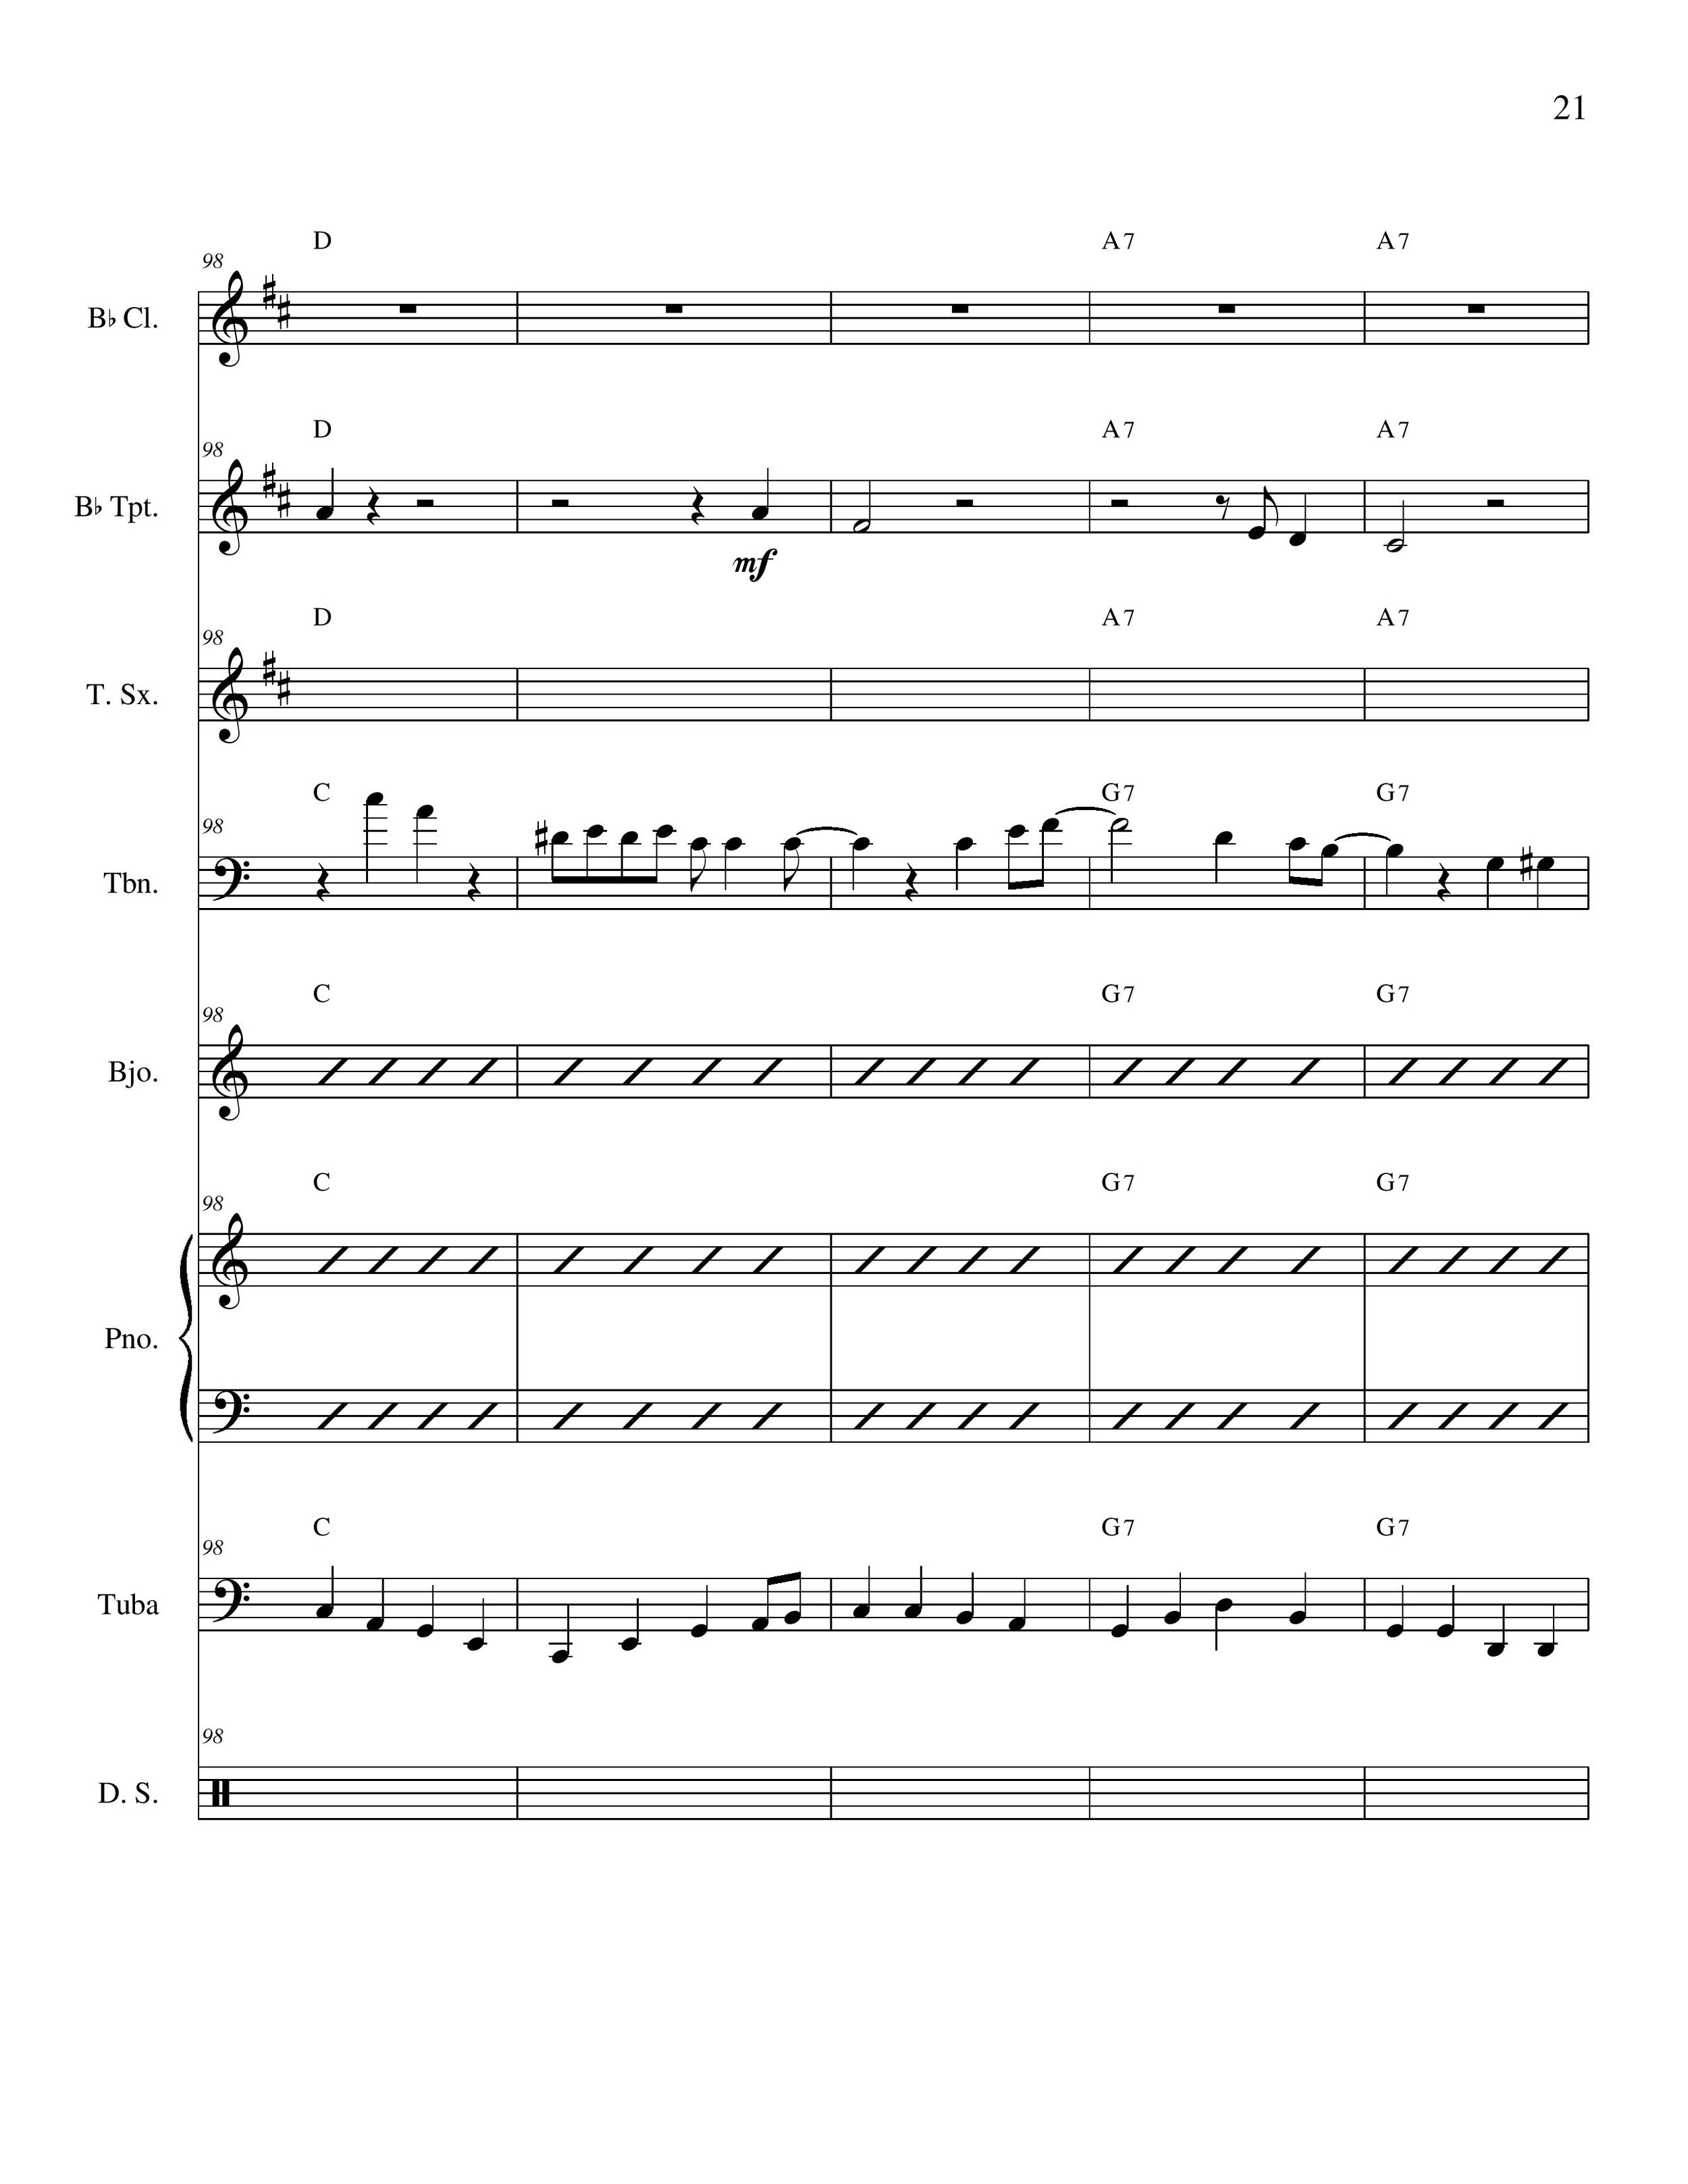 Rudolph the Red-Nosed Reindeer - Score_21.jpg